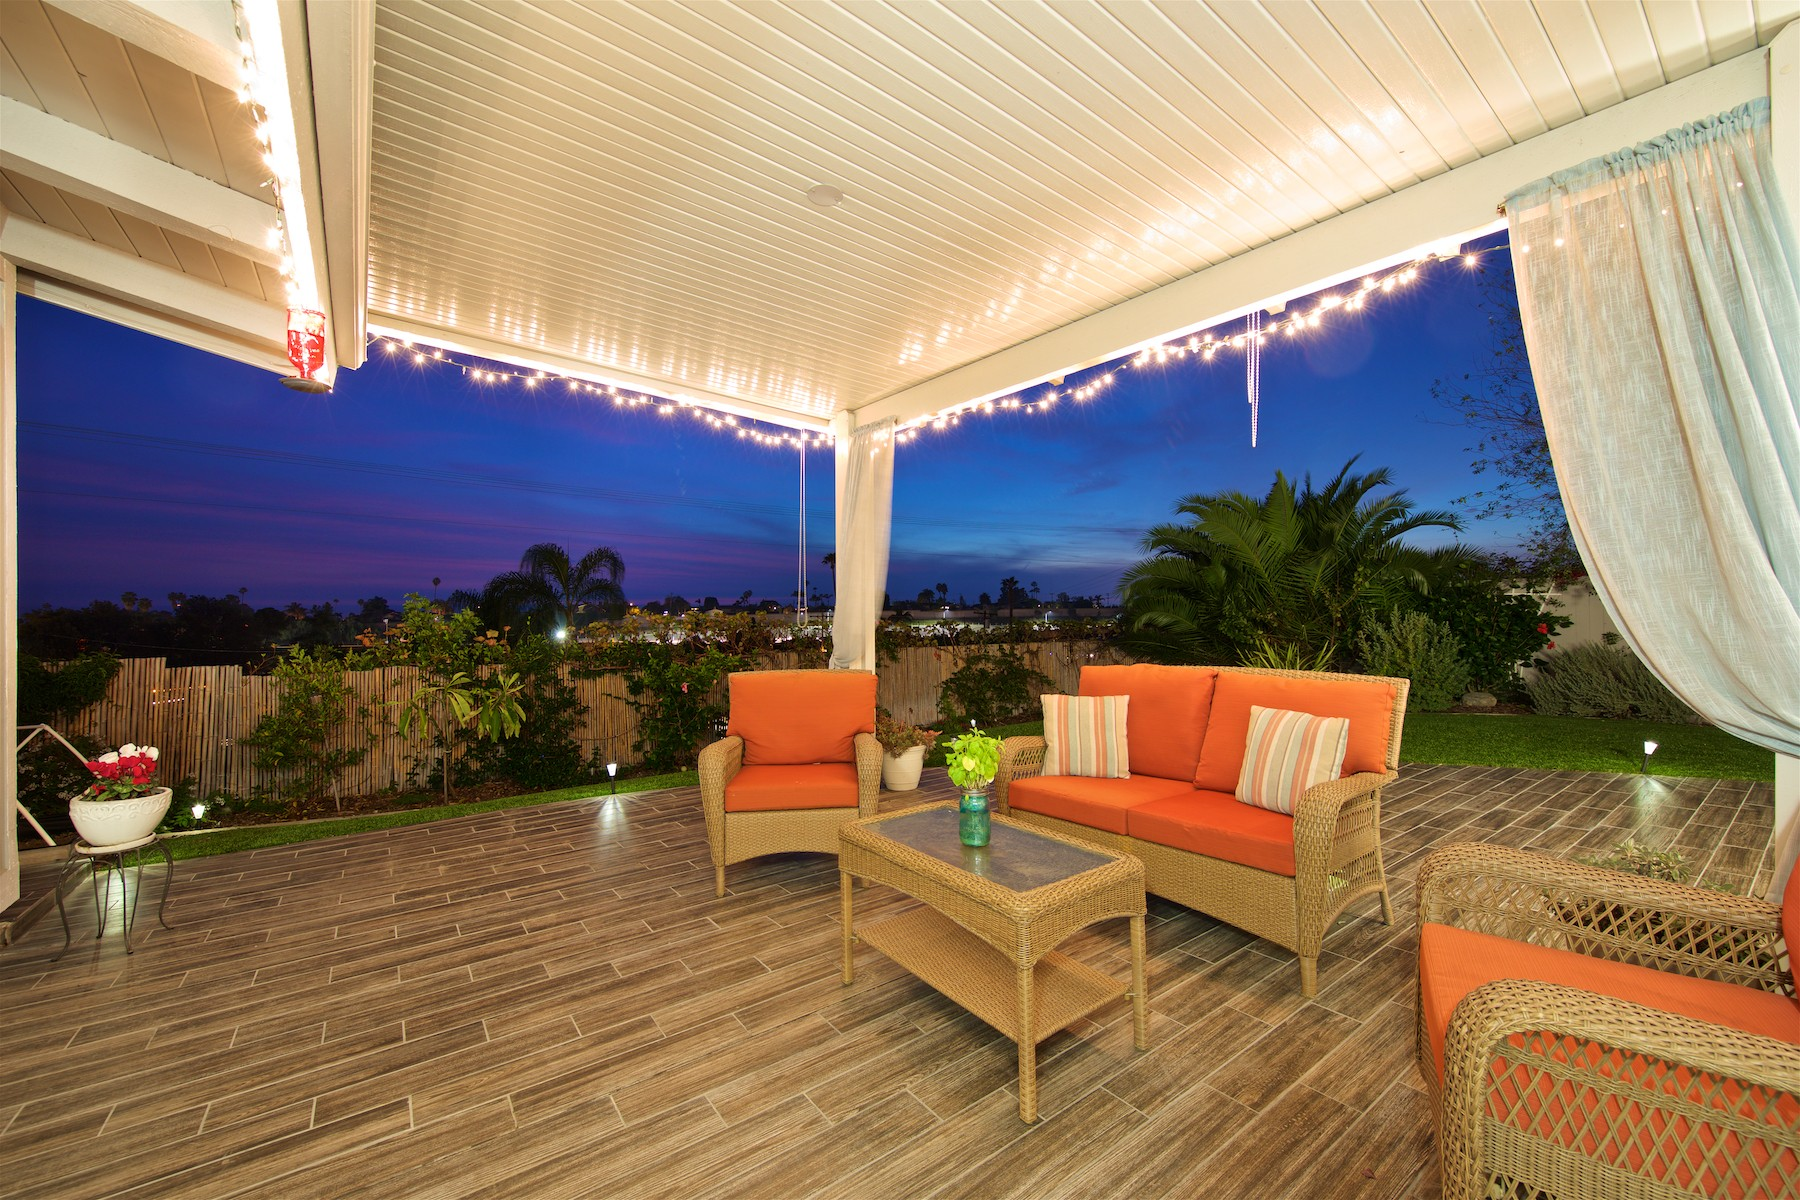 Single Family Home for Sale at 4121 Calle Abril San Clemente, California 92673 United States